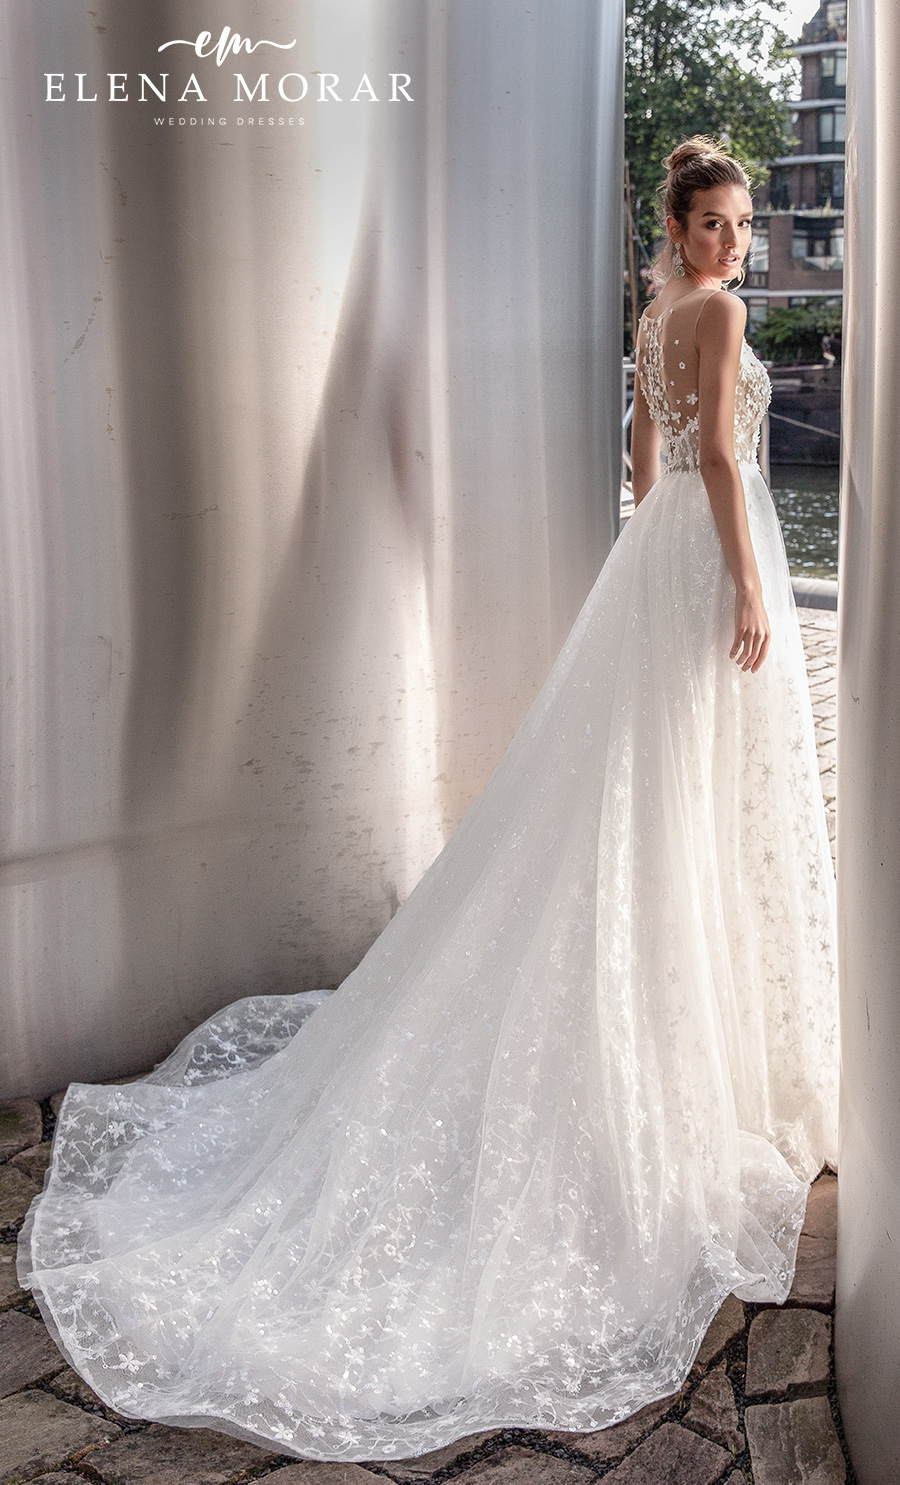 elena morar 2021 rotterdam bridal sleeveless illusion bateau v neck heavily embellished bodice romantic a line wedding dress sheer lace back chapel train (rm016) bv